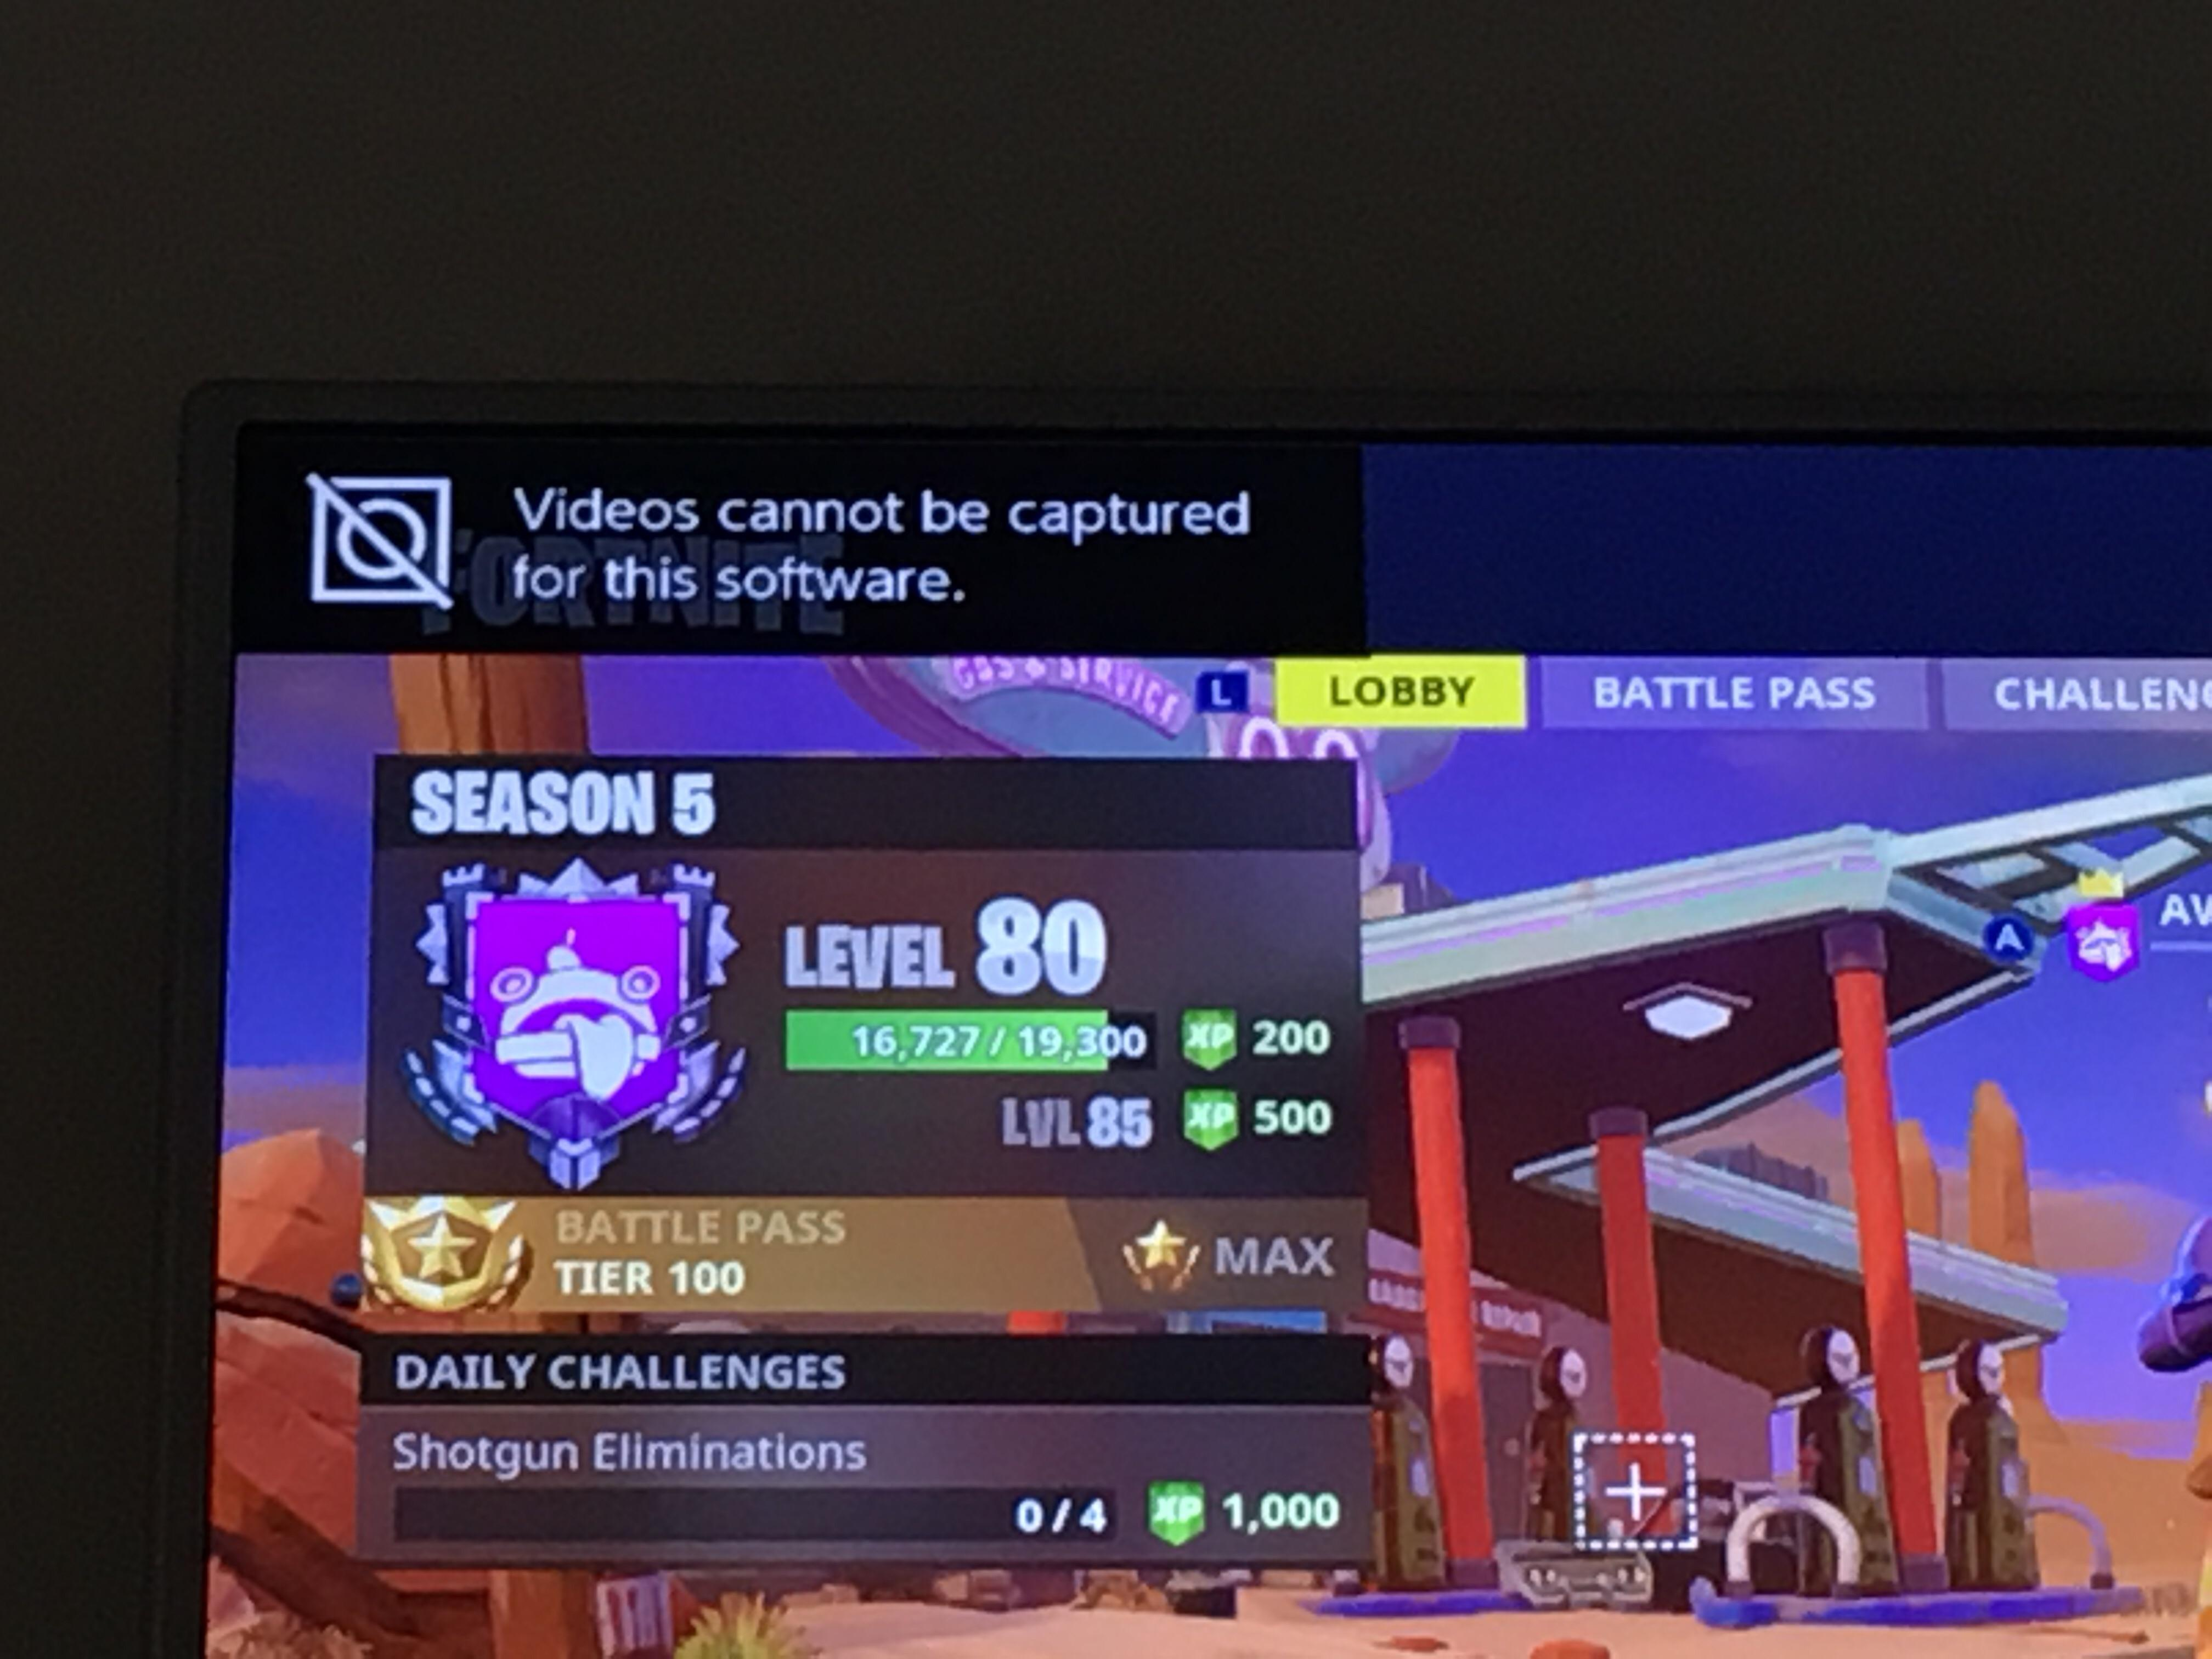 Epic Games Disable Fortnite Video Capture On Switch Due To Performance Issues Fortnite Intel